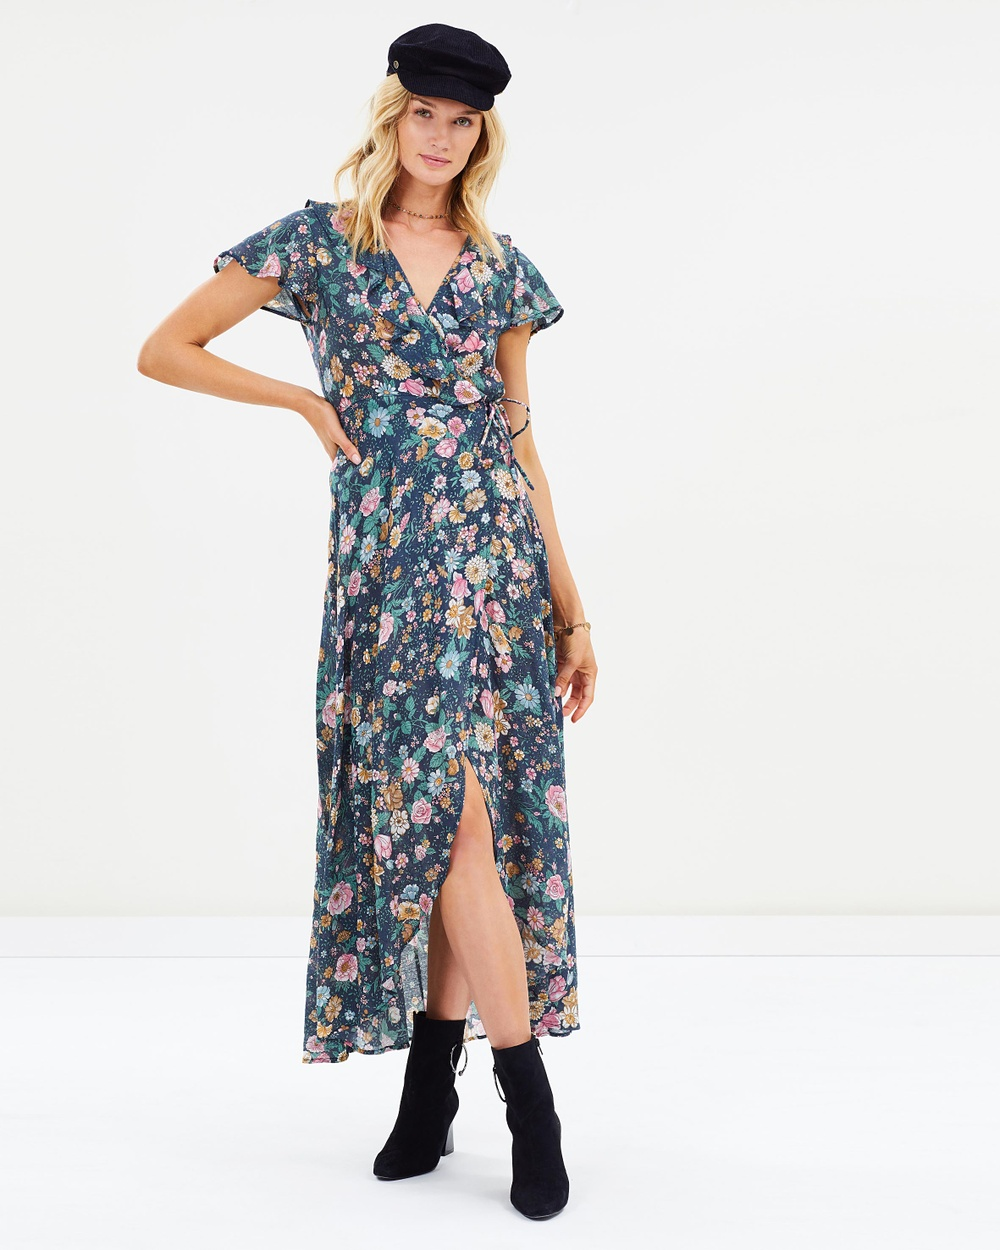 Auguste The Label Spring Rose Frill Neck Wrap Maxi Dress Printed Dresses Navy Spring Rose Frill Neck Wrap Maxi Dress